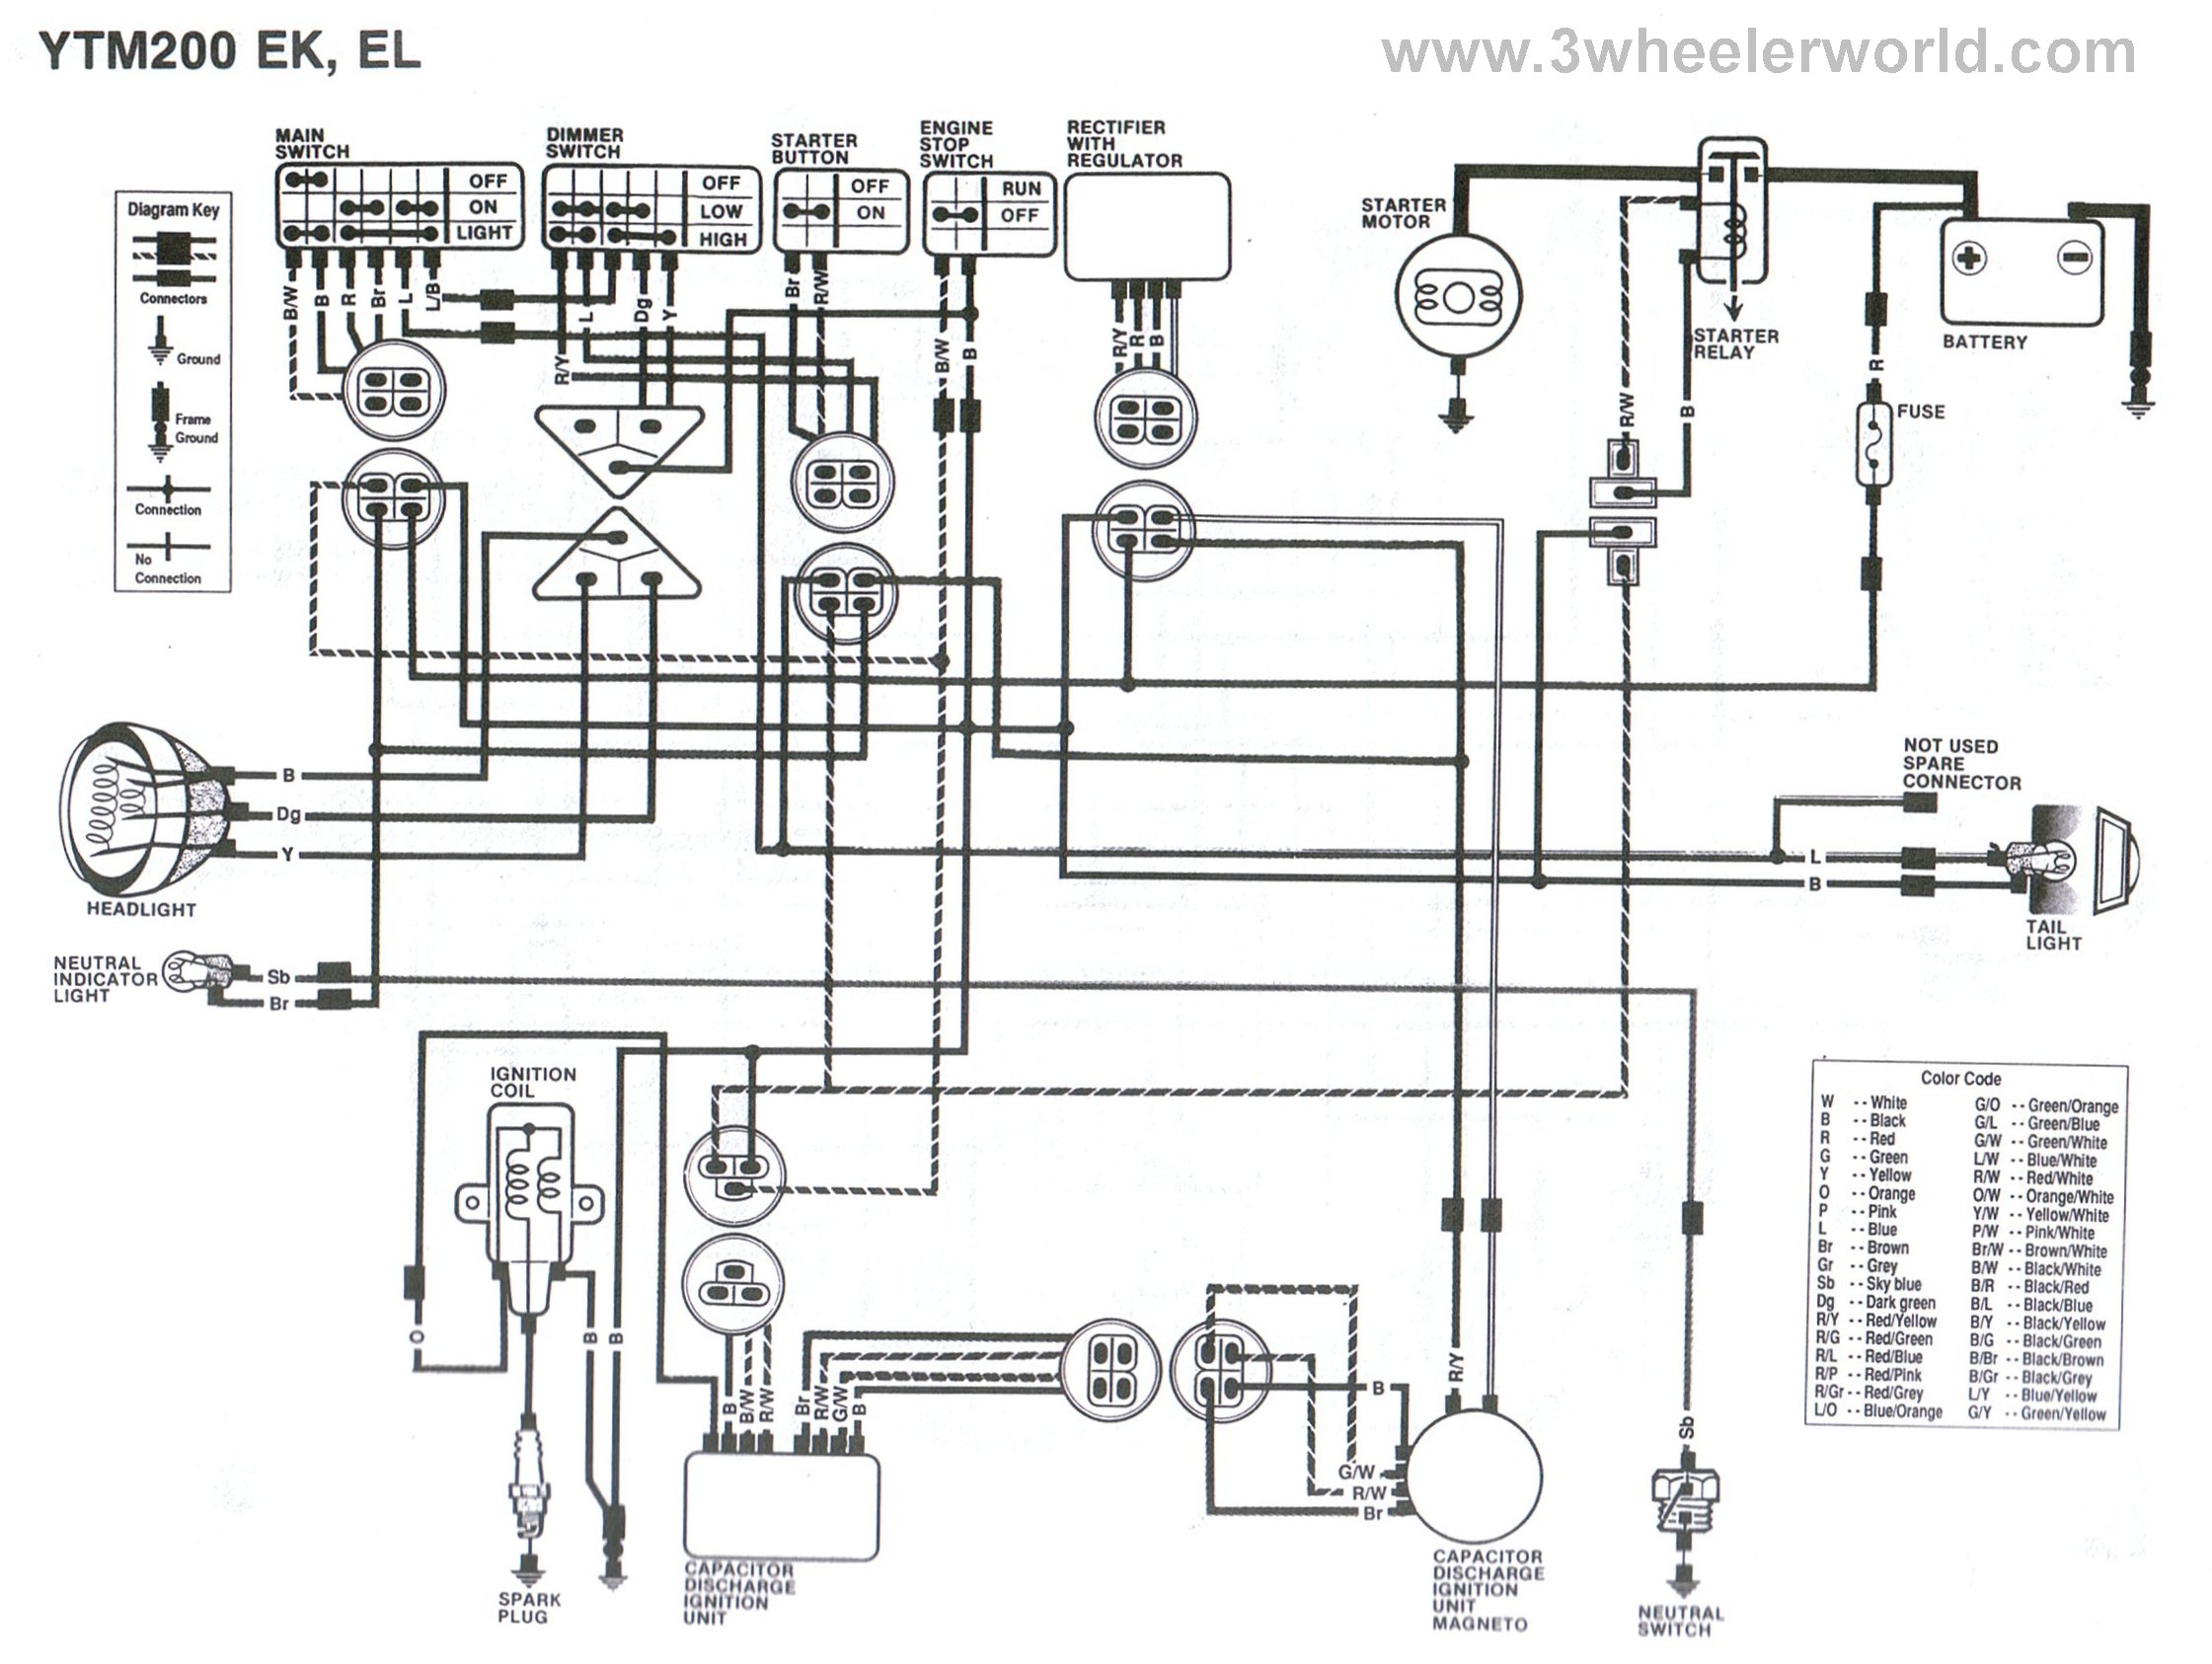 YTM200EKEL yamaha blaster cdi wiring diagram the wiring diagram Yamaha Outboard Wiring Diagram at bakdesigns.co